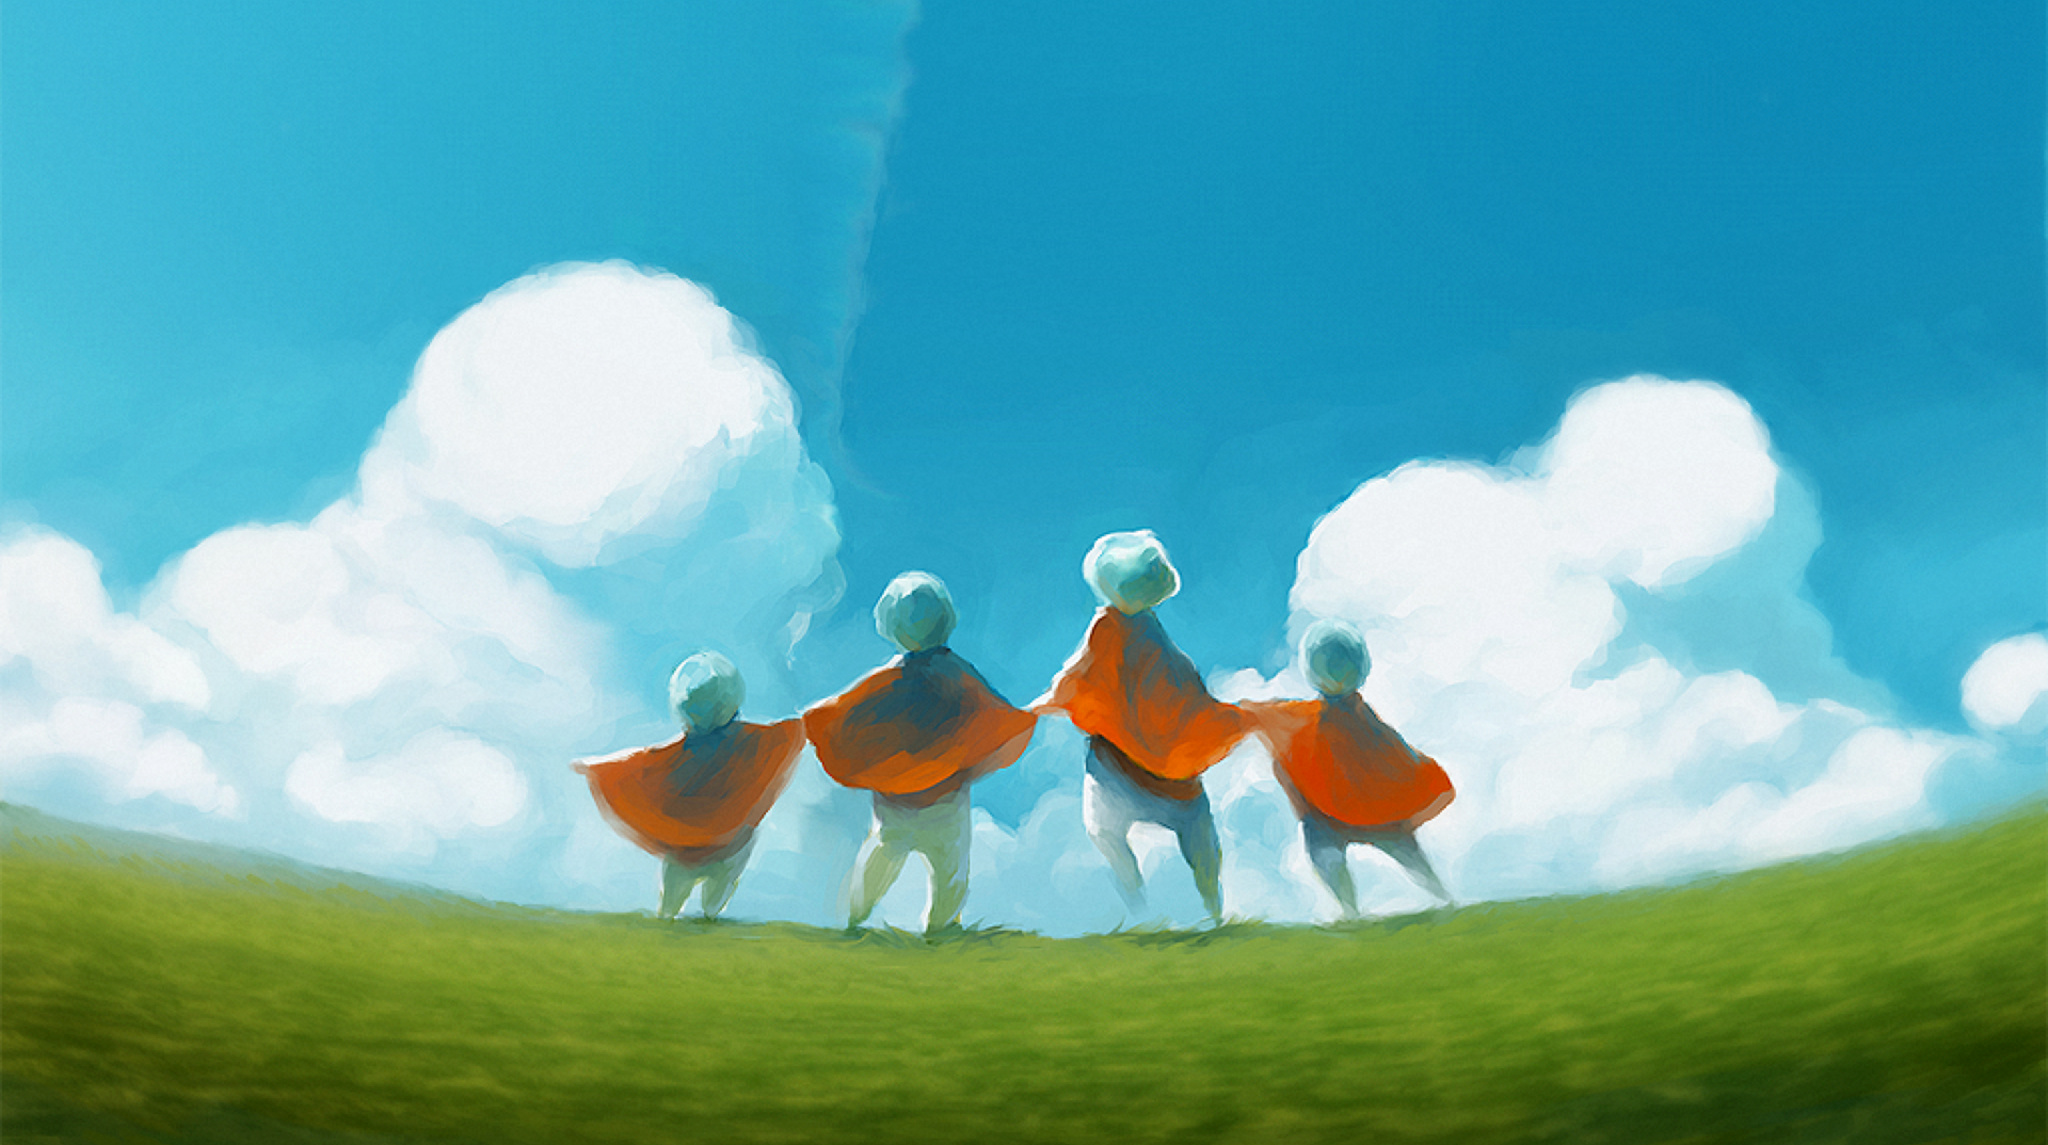 Children of the light stand, hand in hand, amidst an ethereal landscape.